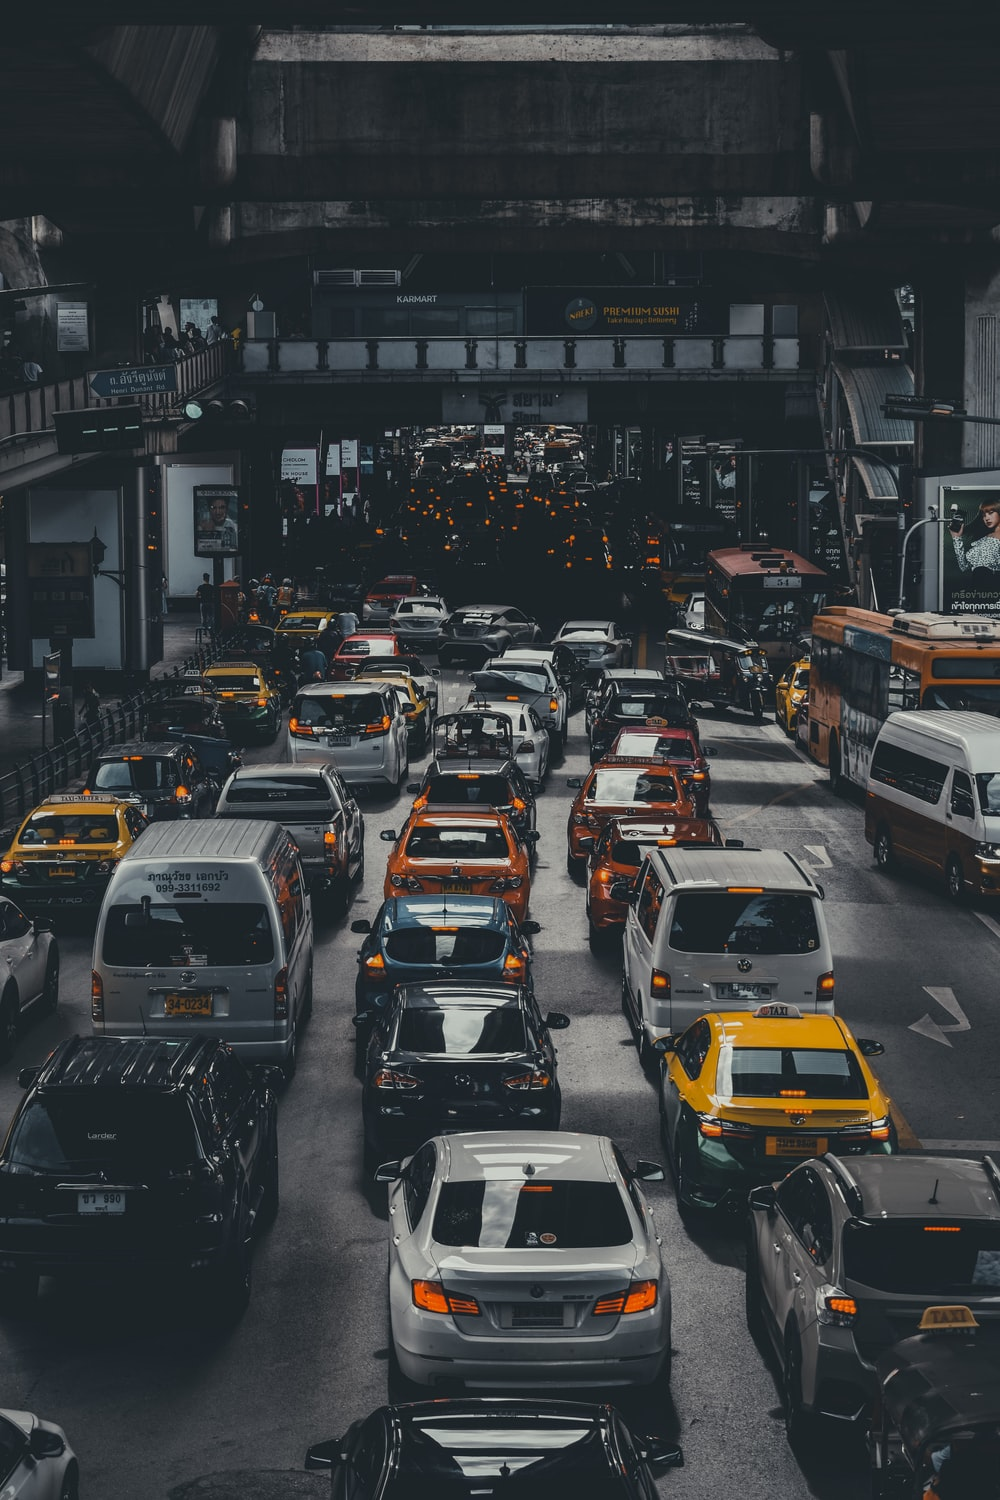 500 Traffic Jam Pictures Hd Download Free Images On Unsplash